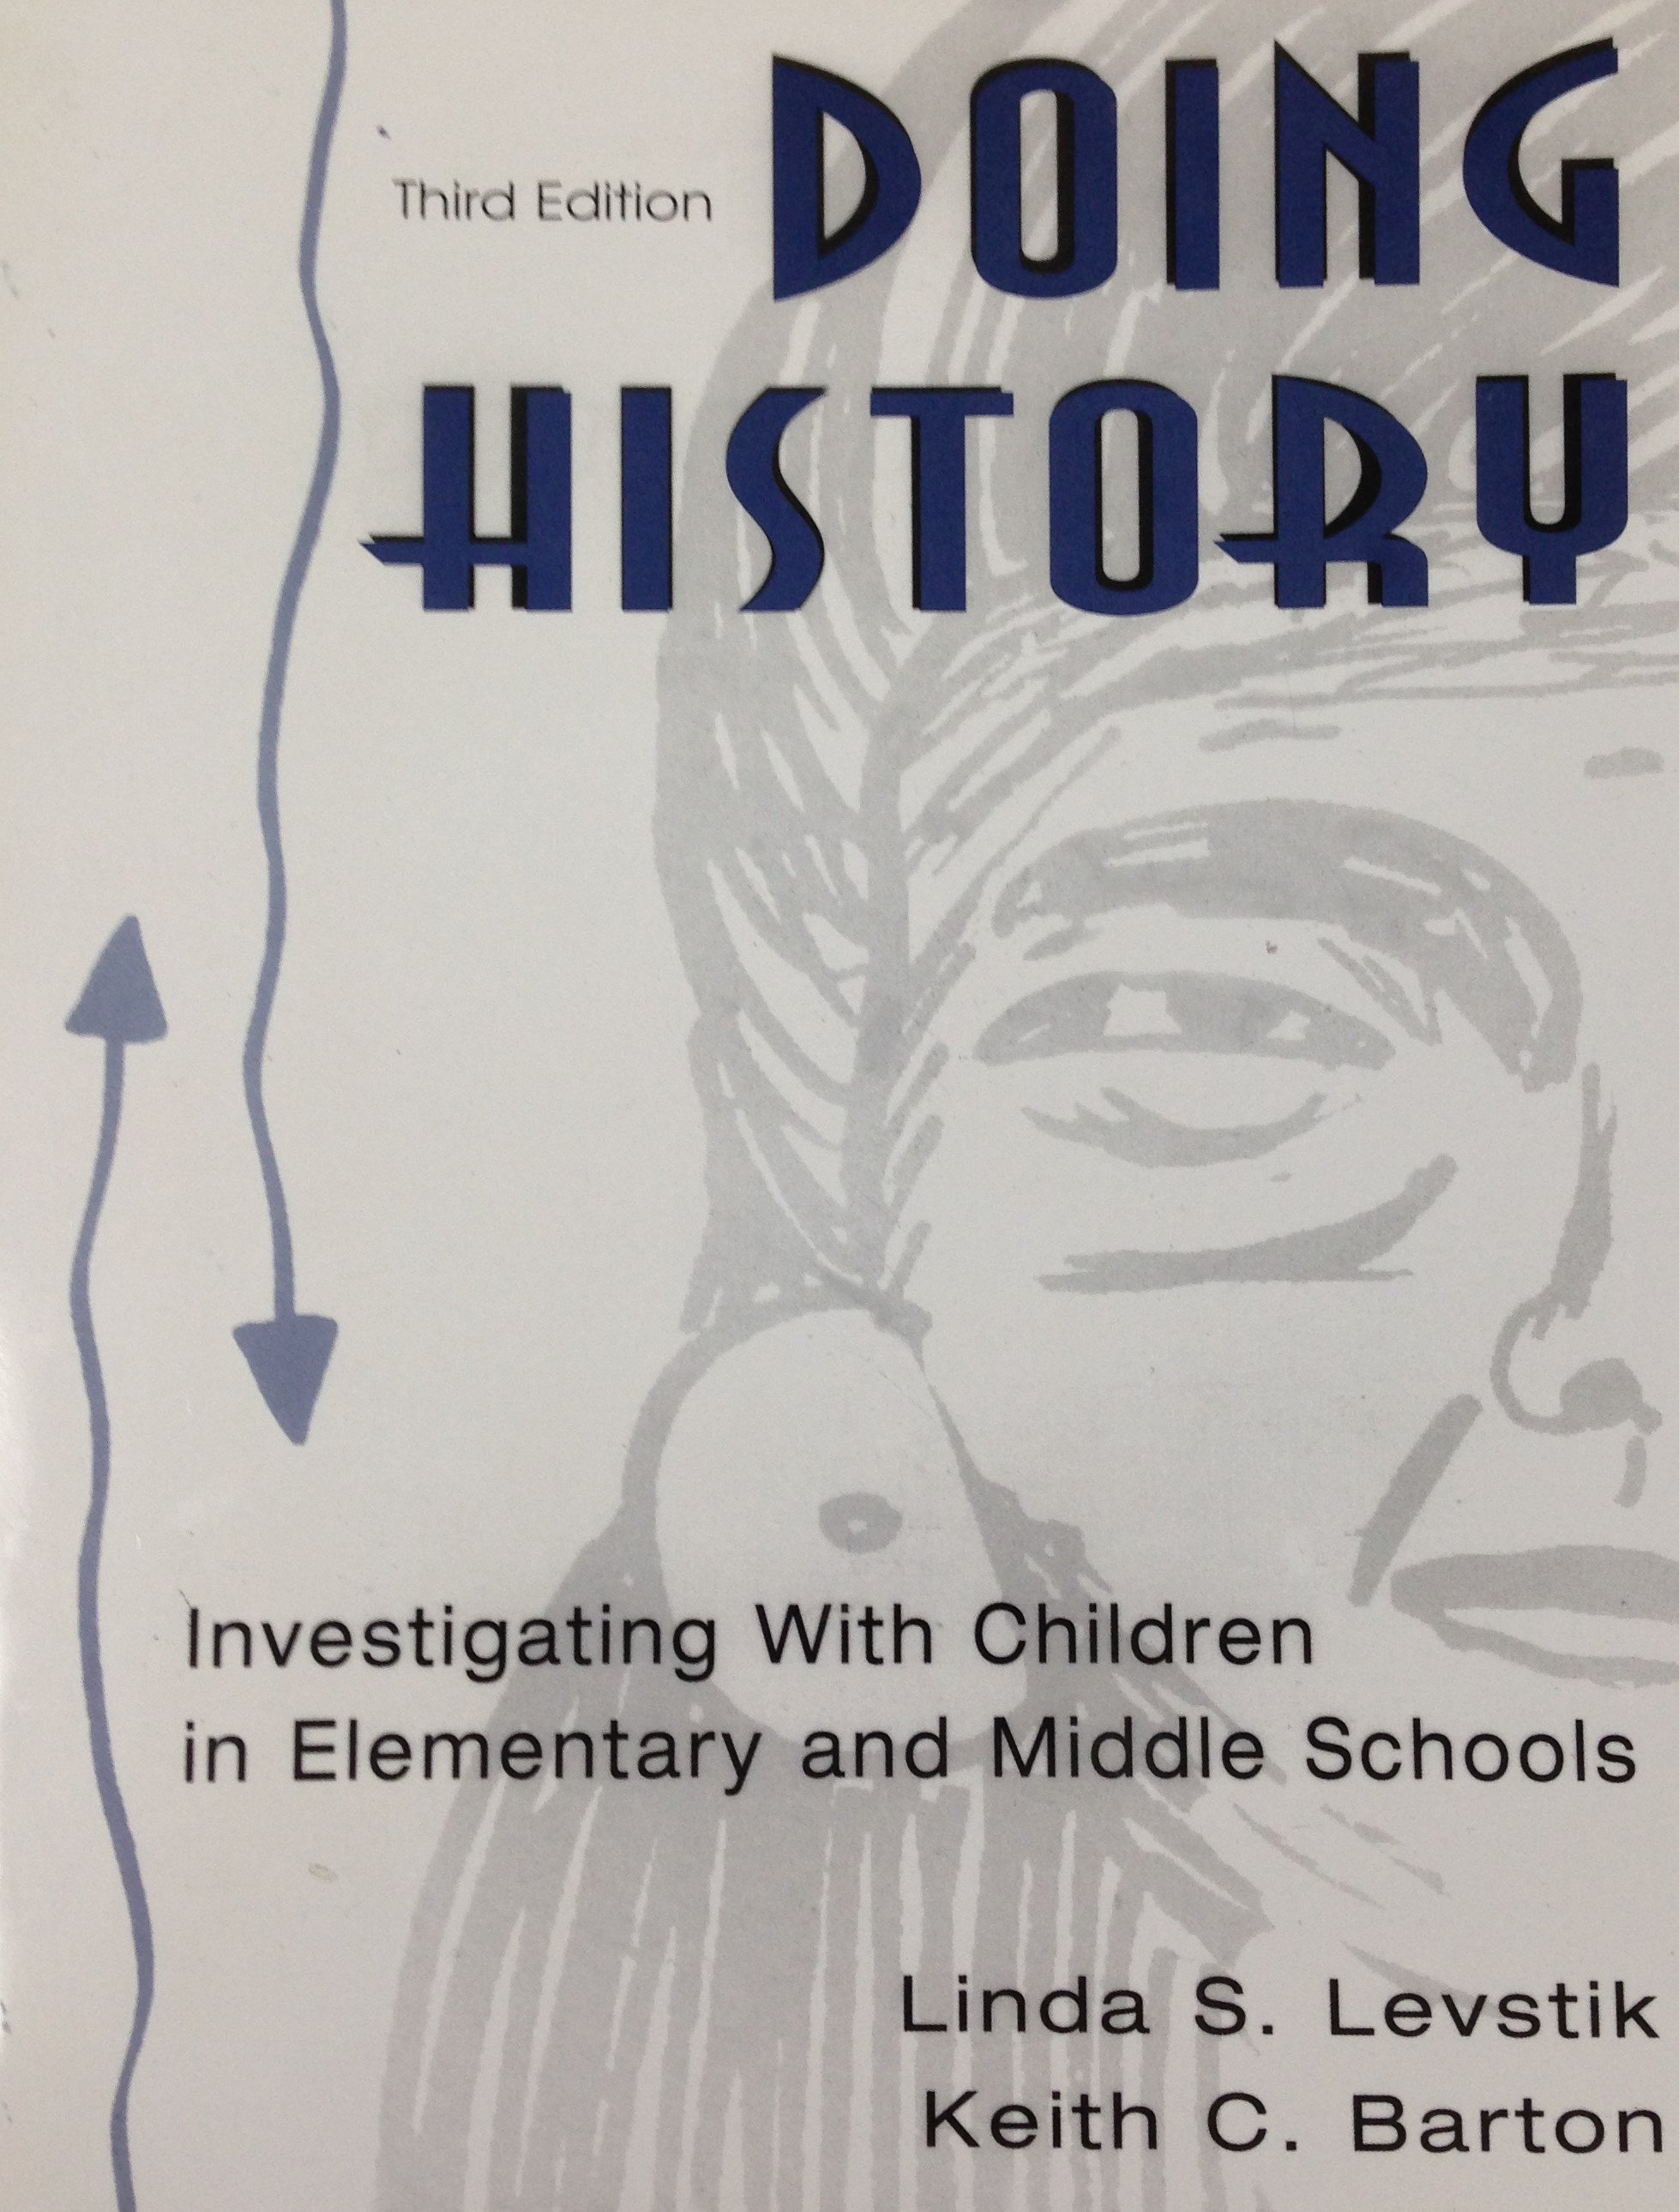 Doing History:  Investigating With Children in Elementary and Middle Schools by Linda S. Levastik and Keith C. Barton (USED) 00077